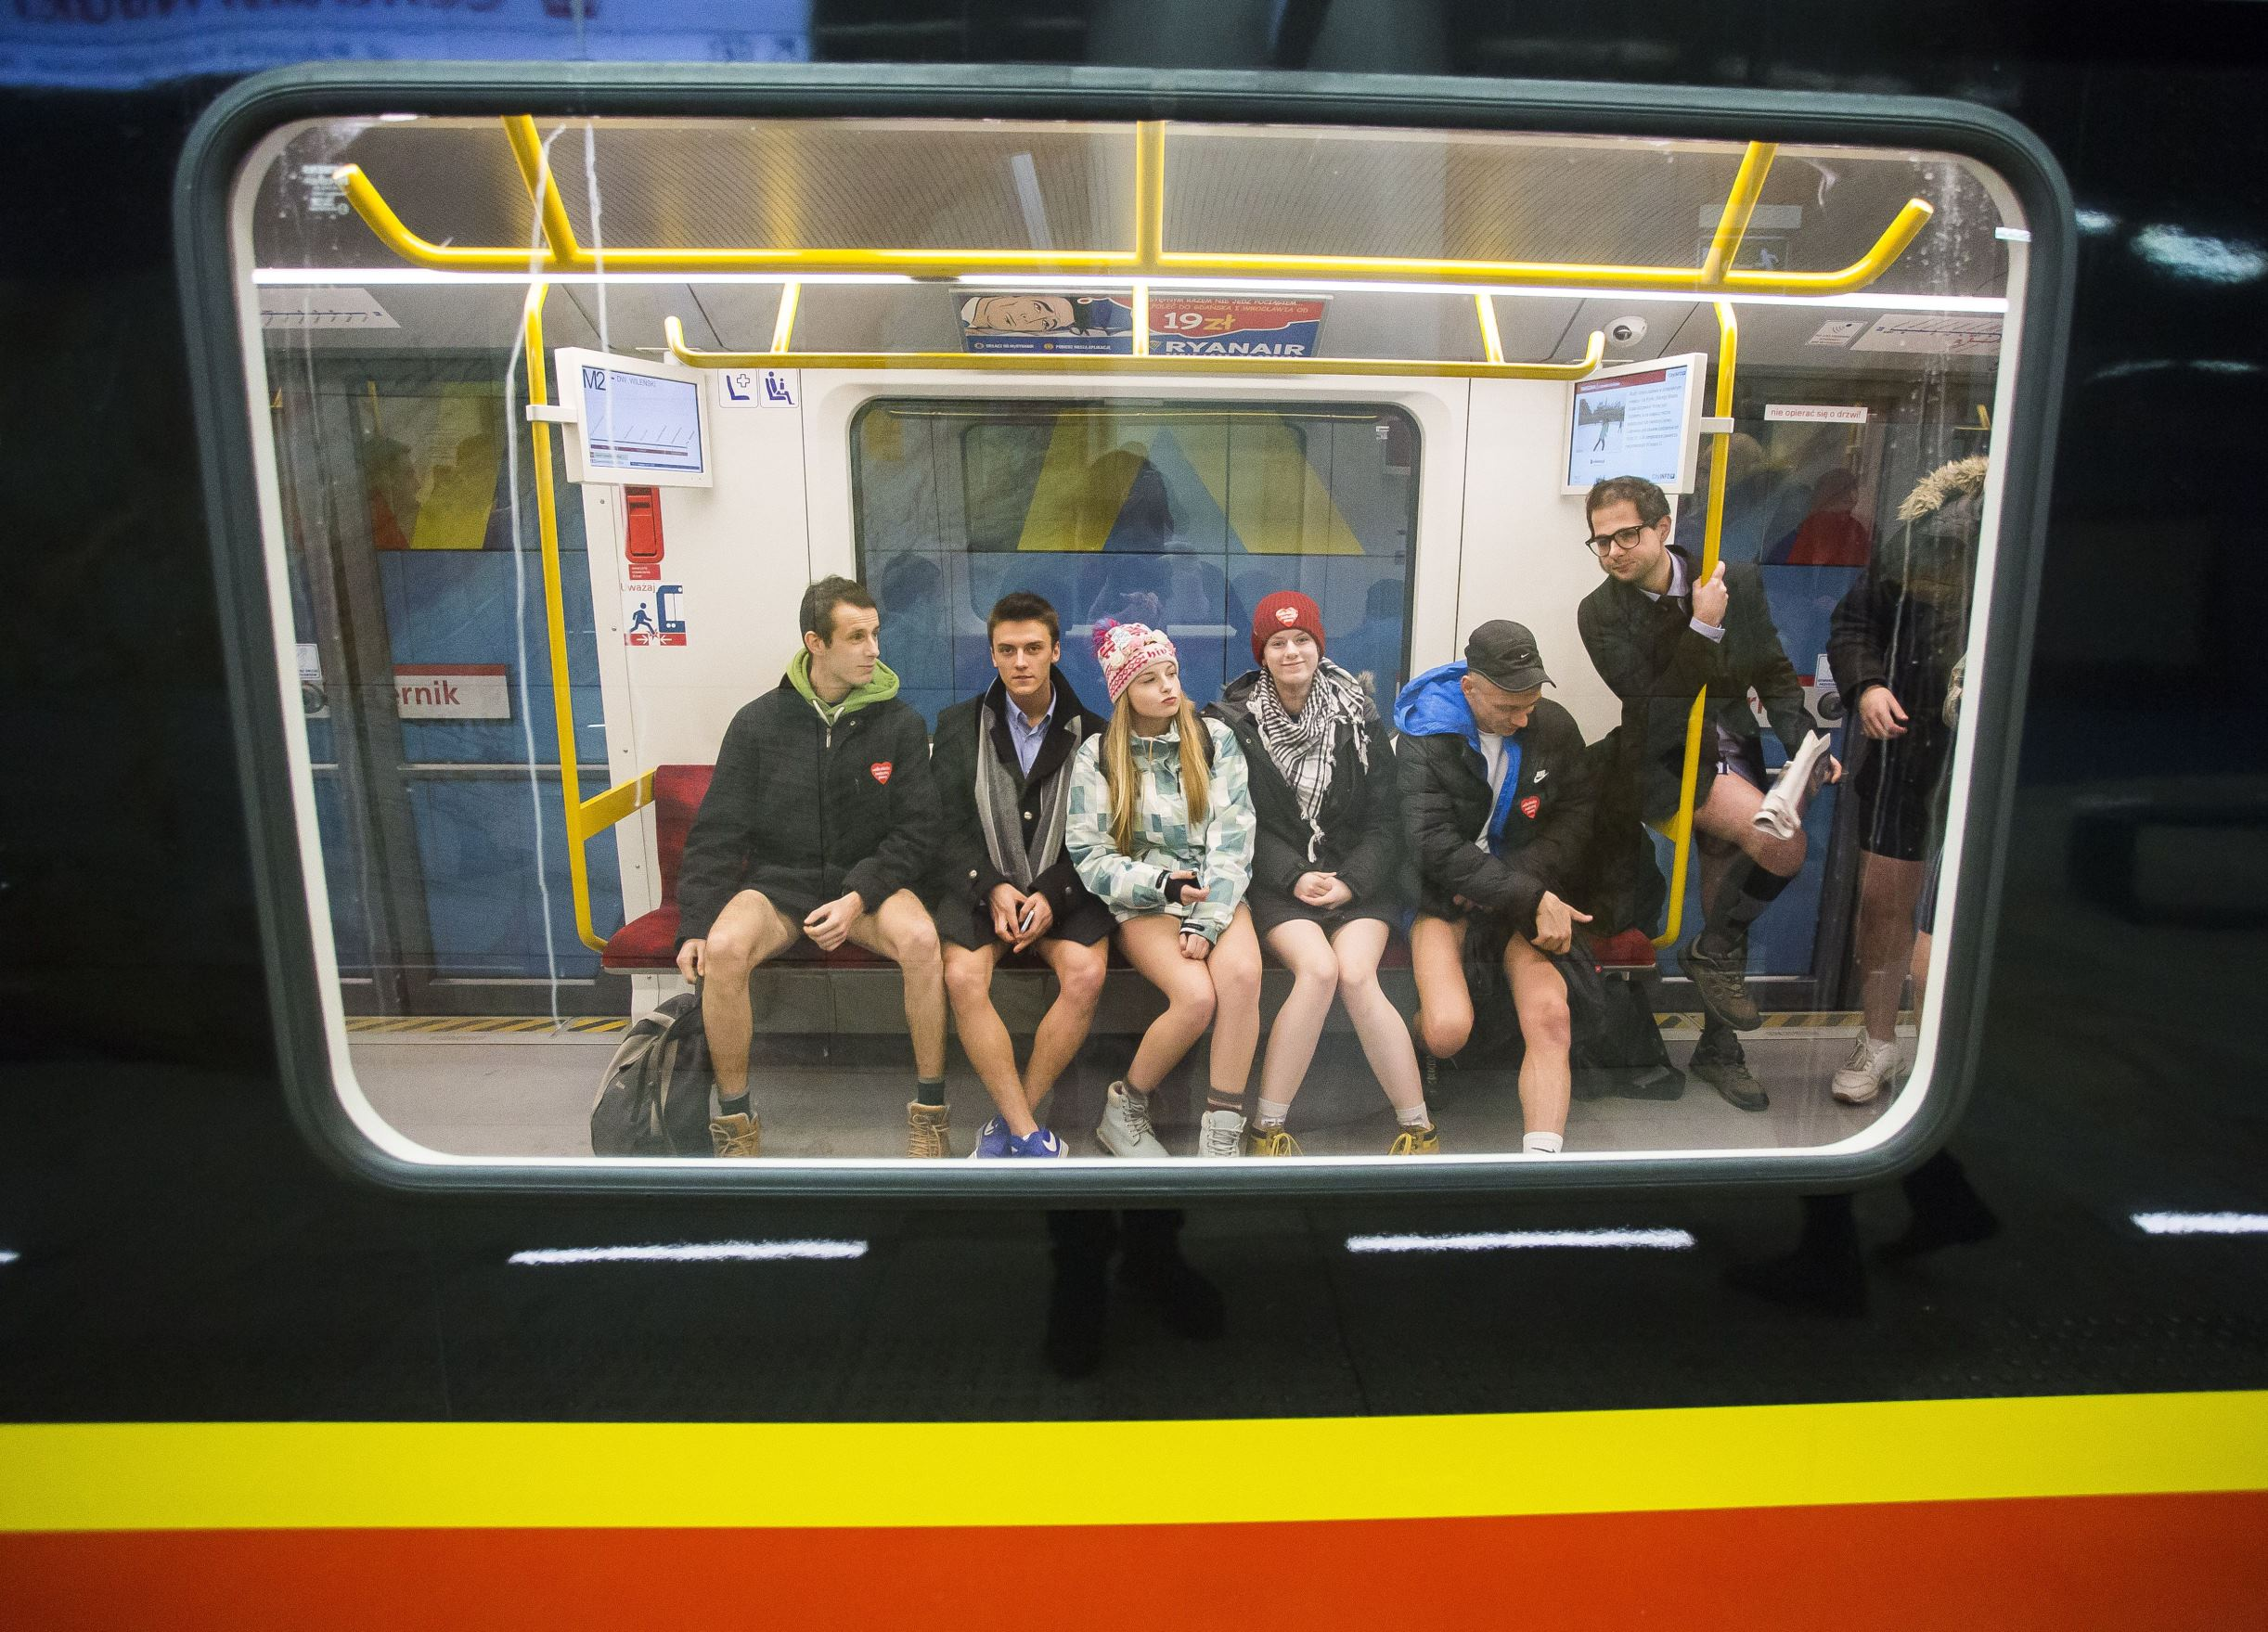 No Pants Subway Ride, Warsaw, Poland - 10 Jan 2016 People without pants sit in a subway car while happening to celebrate the day's ride the subway without pants in Warsaw